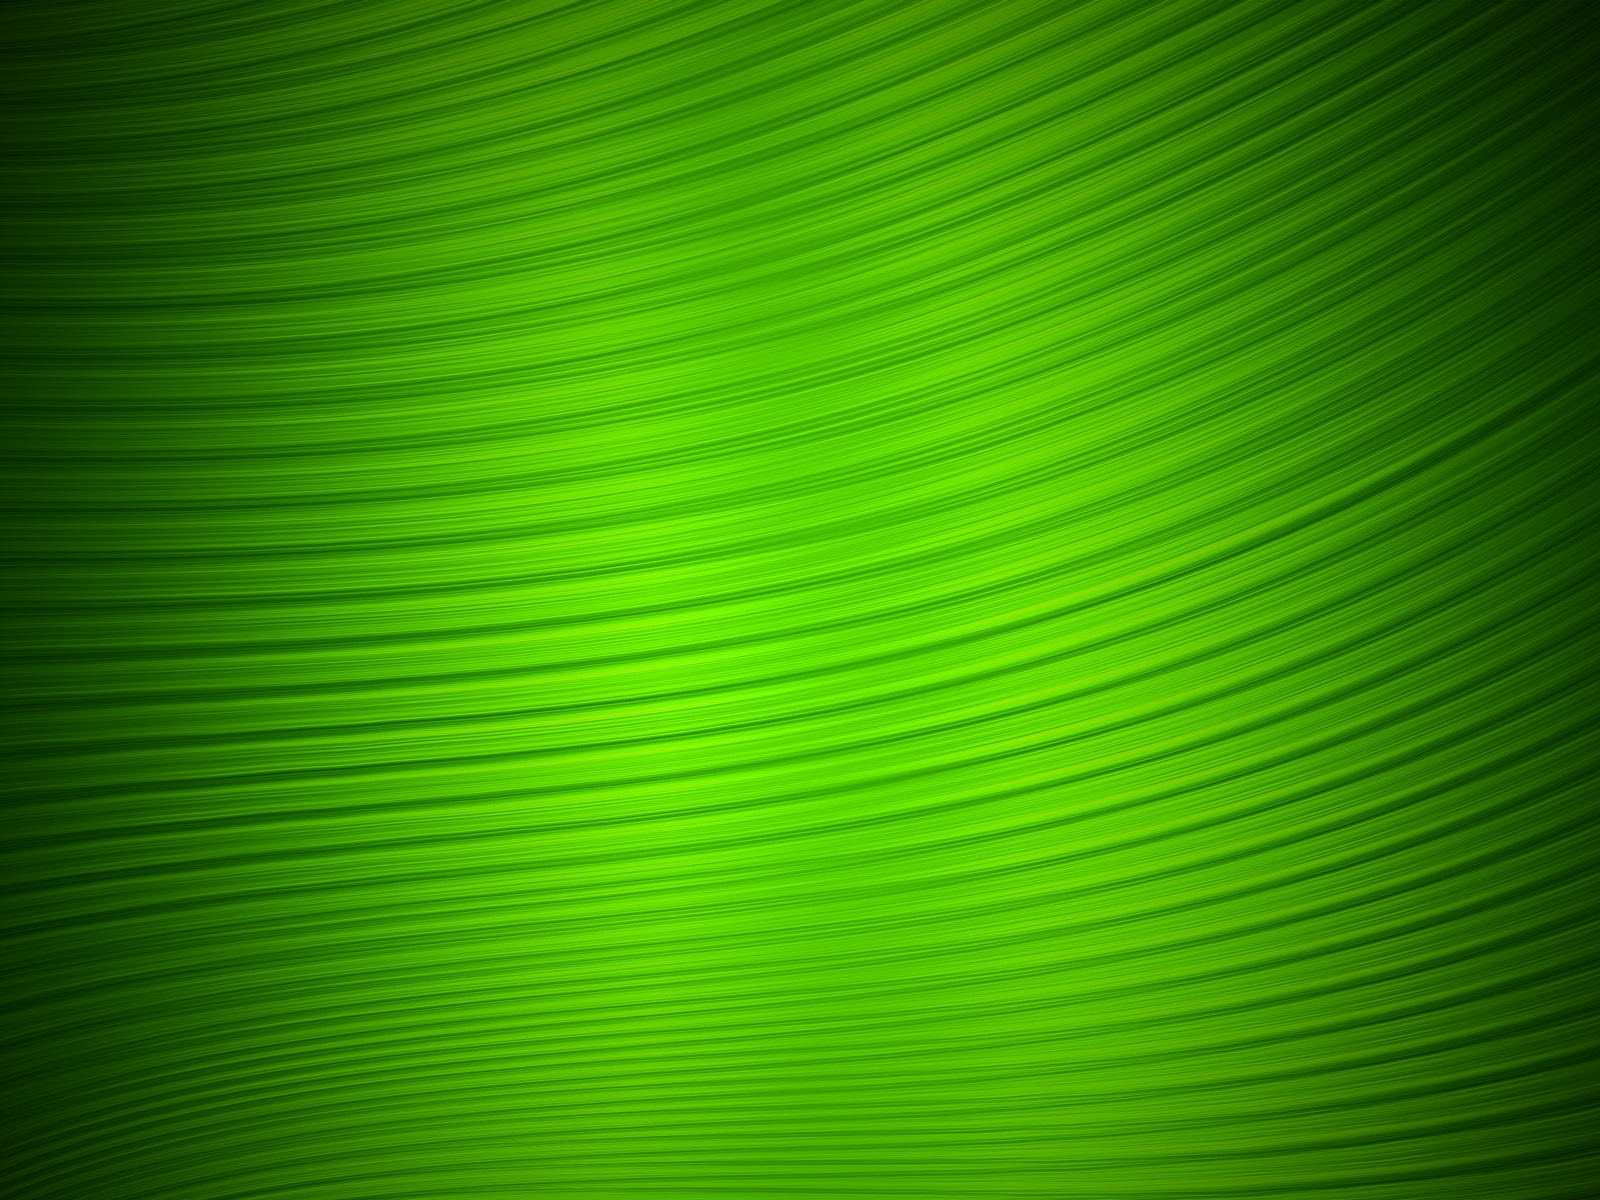 Green HD Desktop Wallpaper For Desktop 1600x1200